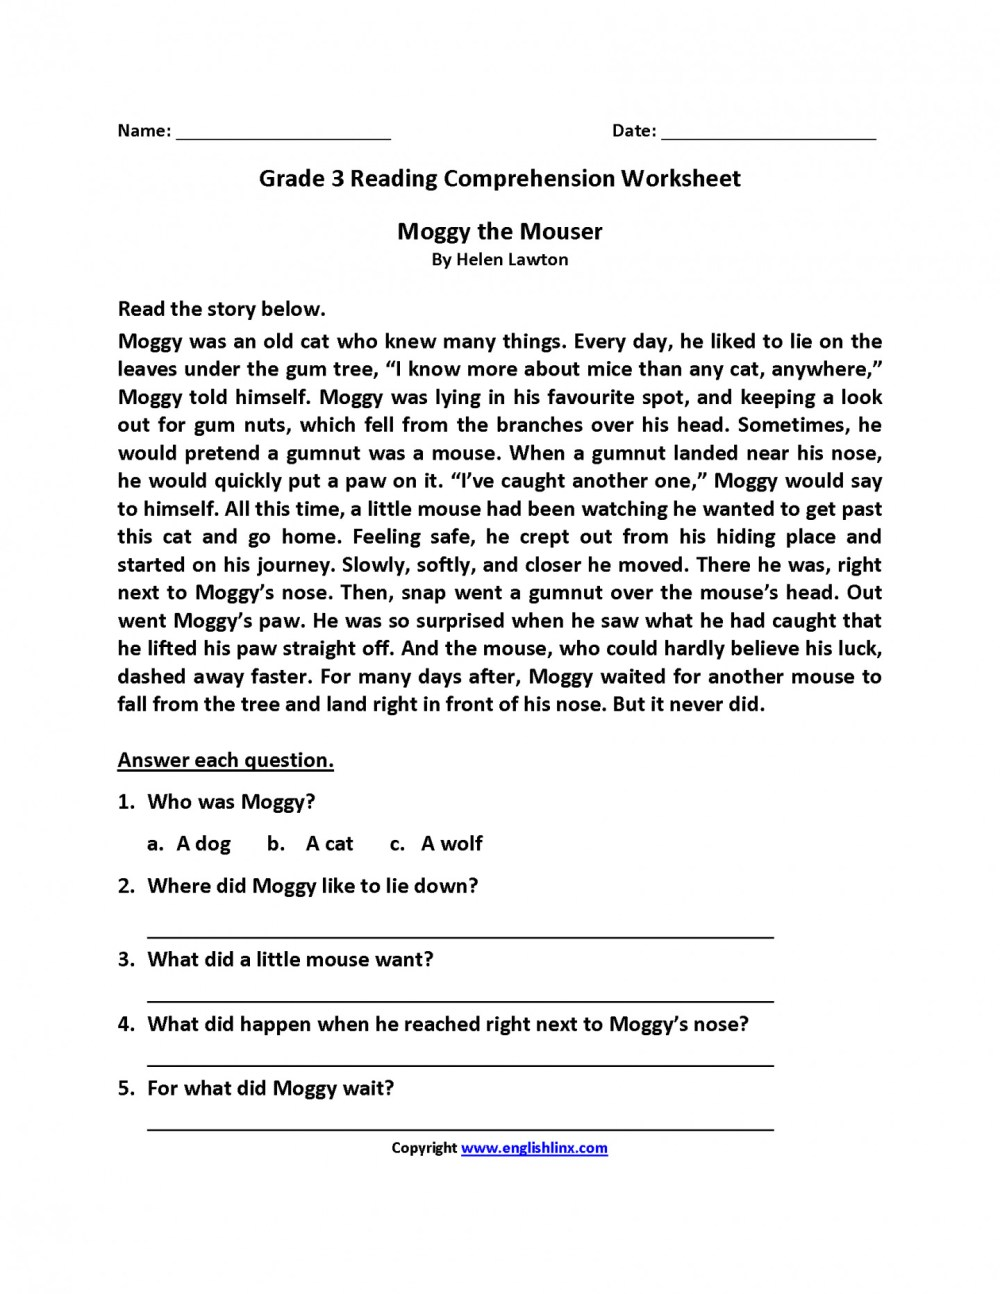 medium resolution of Dworksheet 3rd Grade Reading Comprehension Printable   Printable Worksheets  and Activities for Teachers